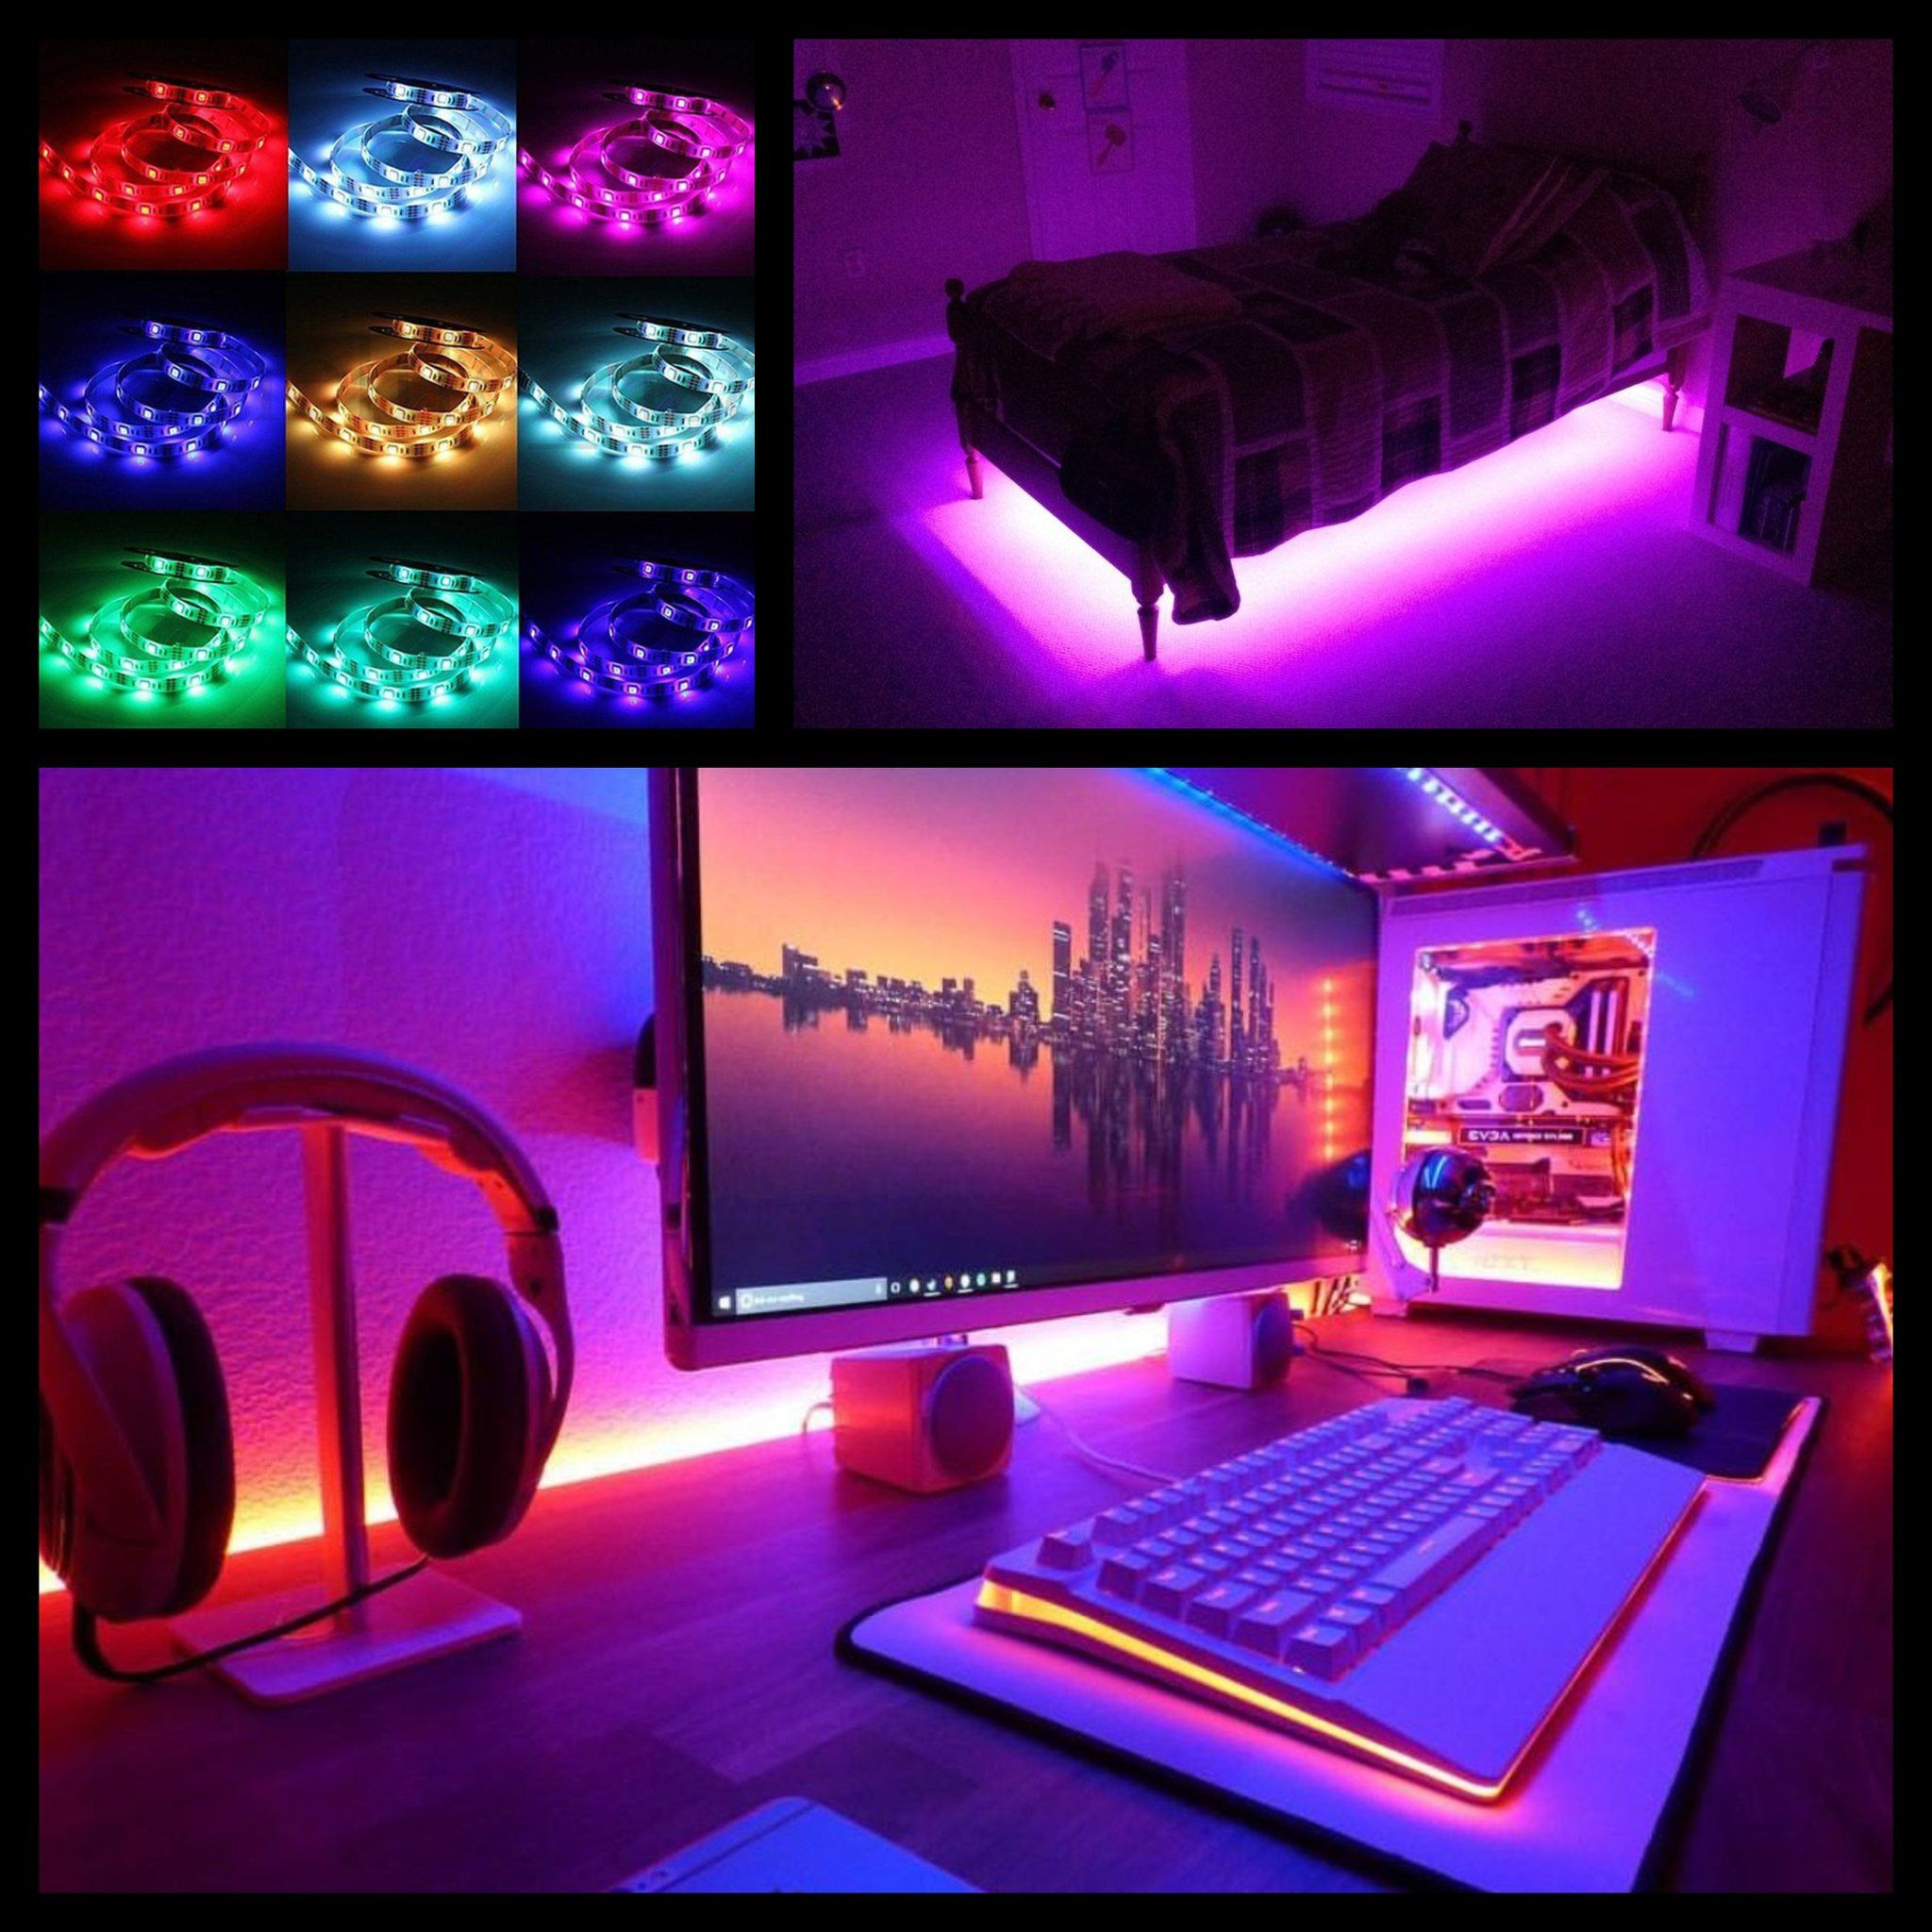 Led Strip Lights In Bedroom Check More At Http Www Arch20 Club 2018 03 25 Led Strip Lights In Bedroom Strip Lighting Led Strip Lighting Bedroom Lighting